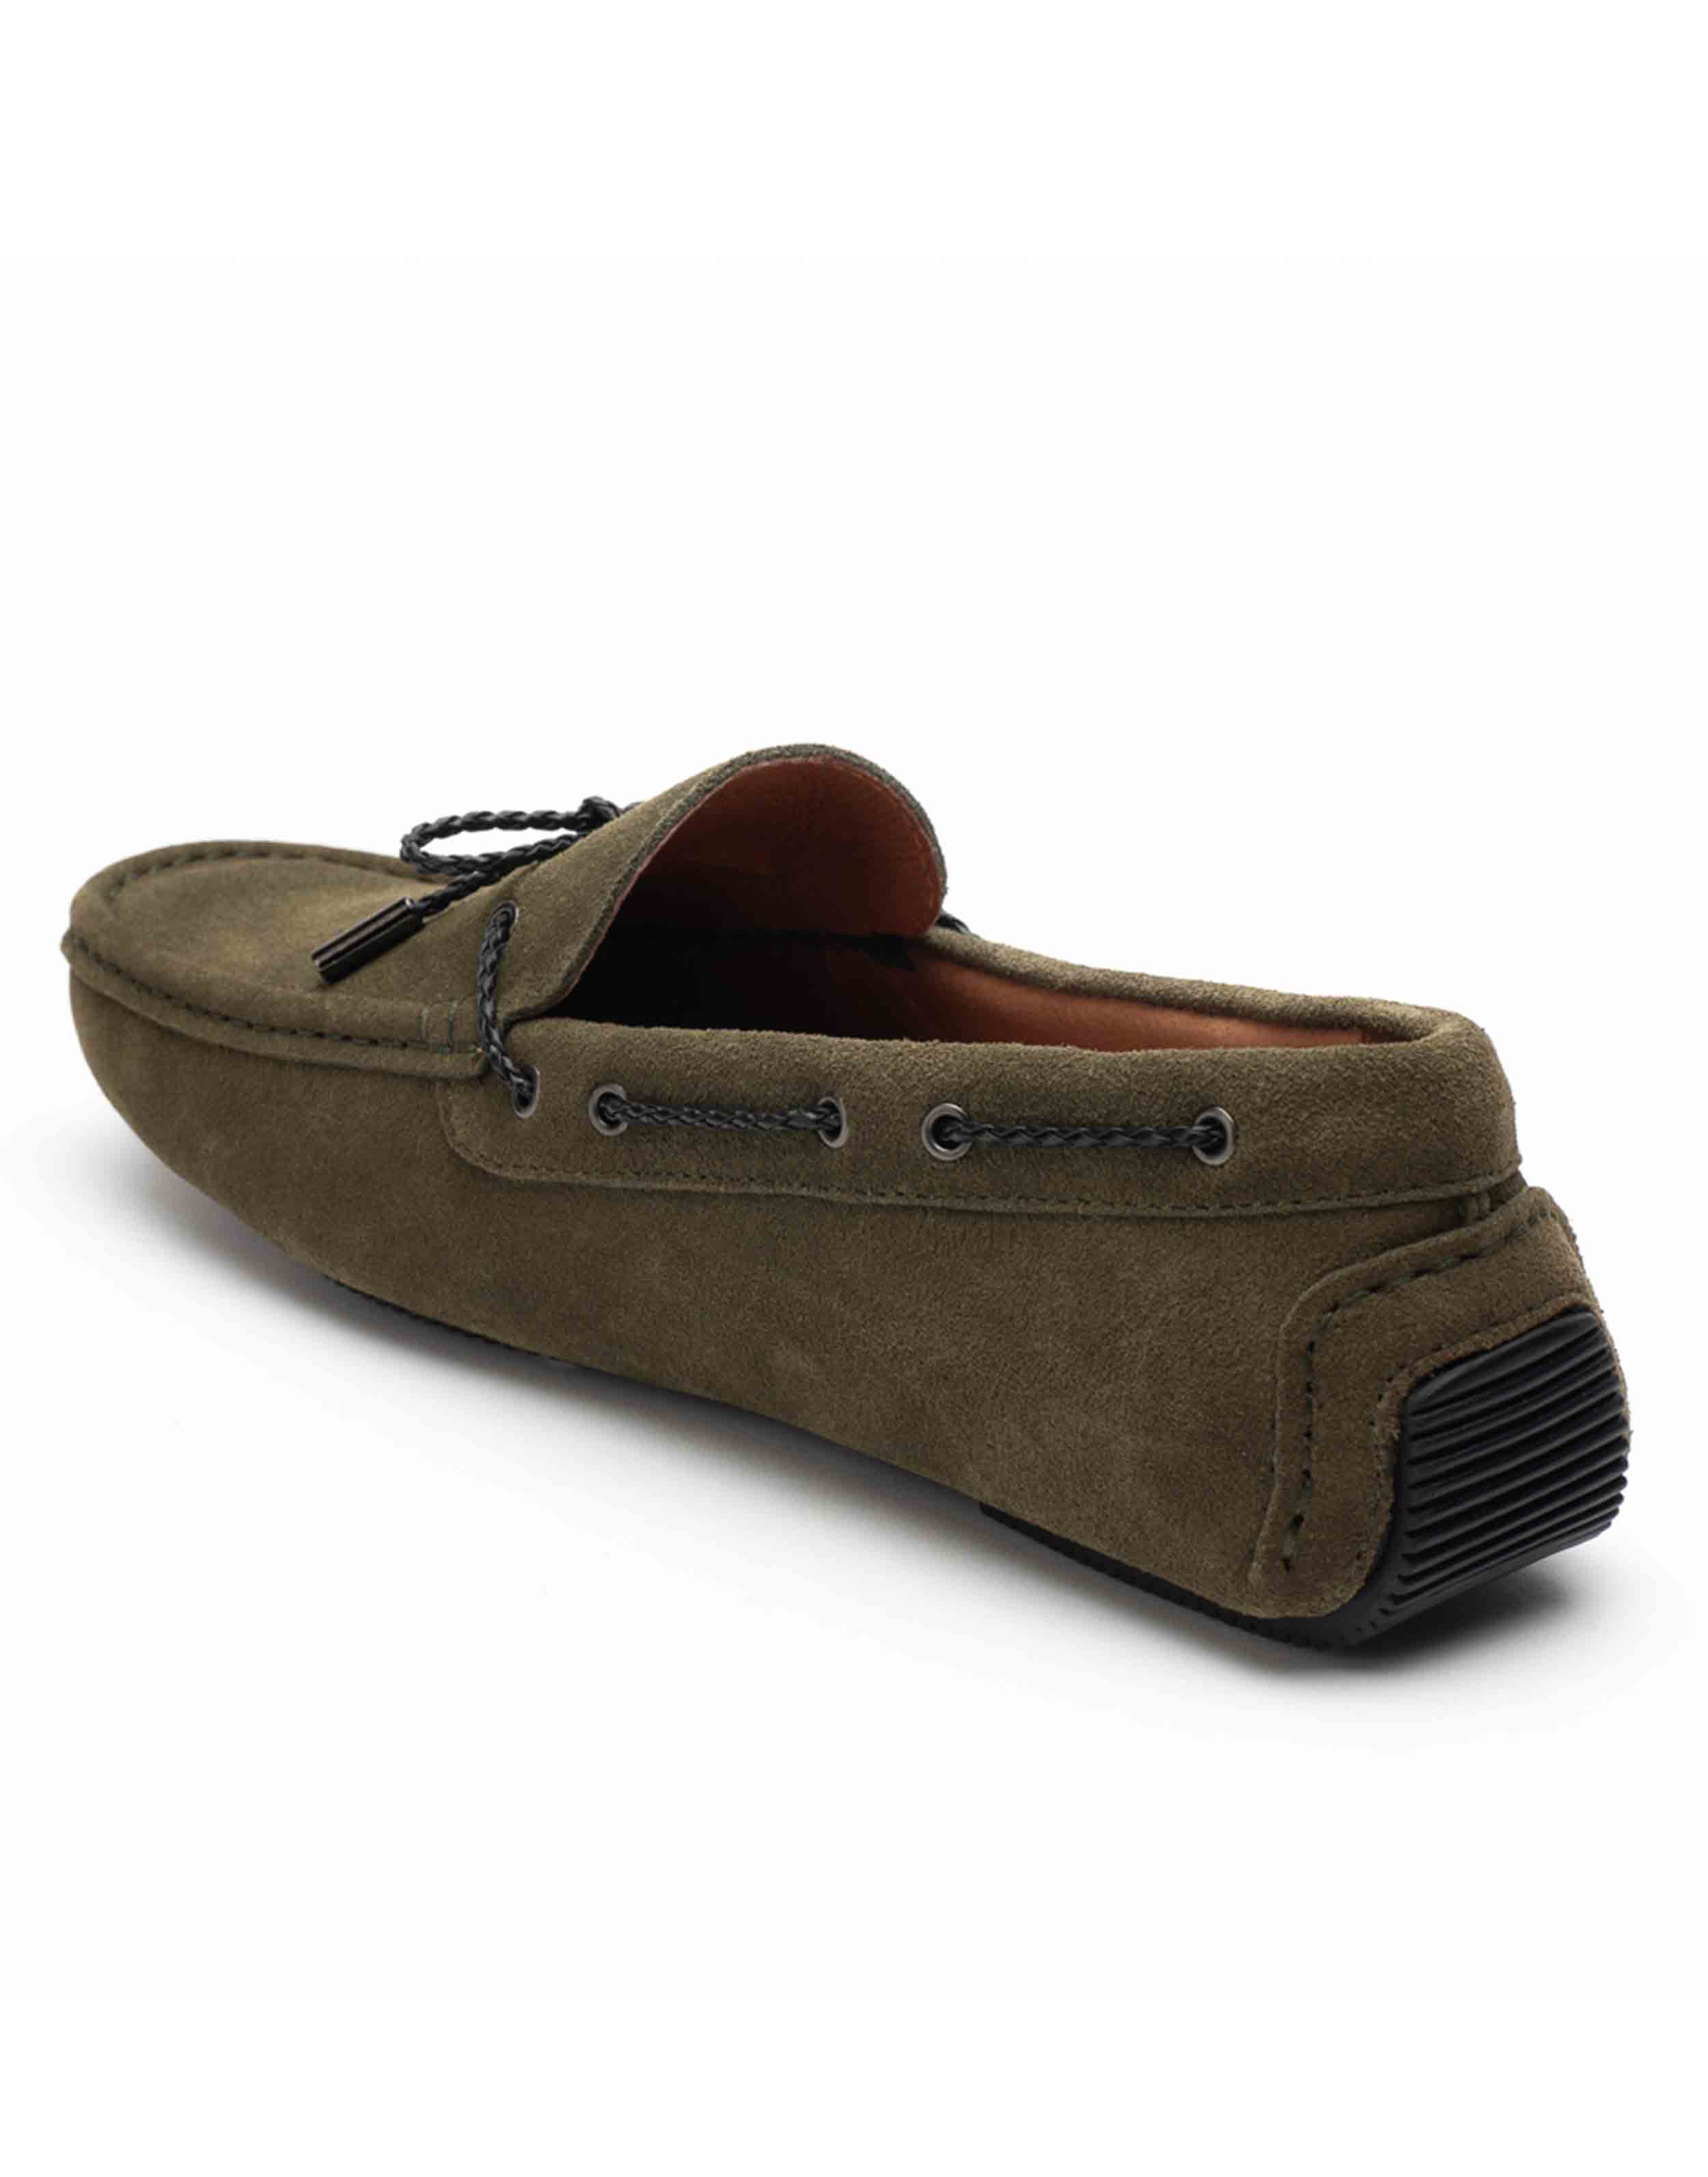 Heel _ Buckle London-HBDARM102-Olive Driving Moccassins-3